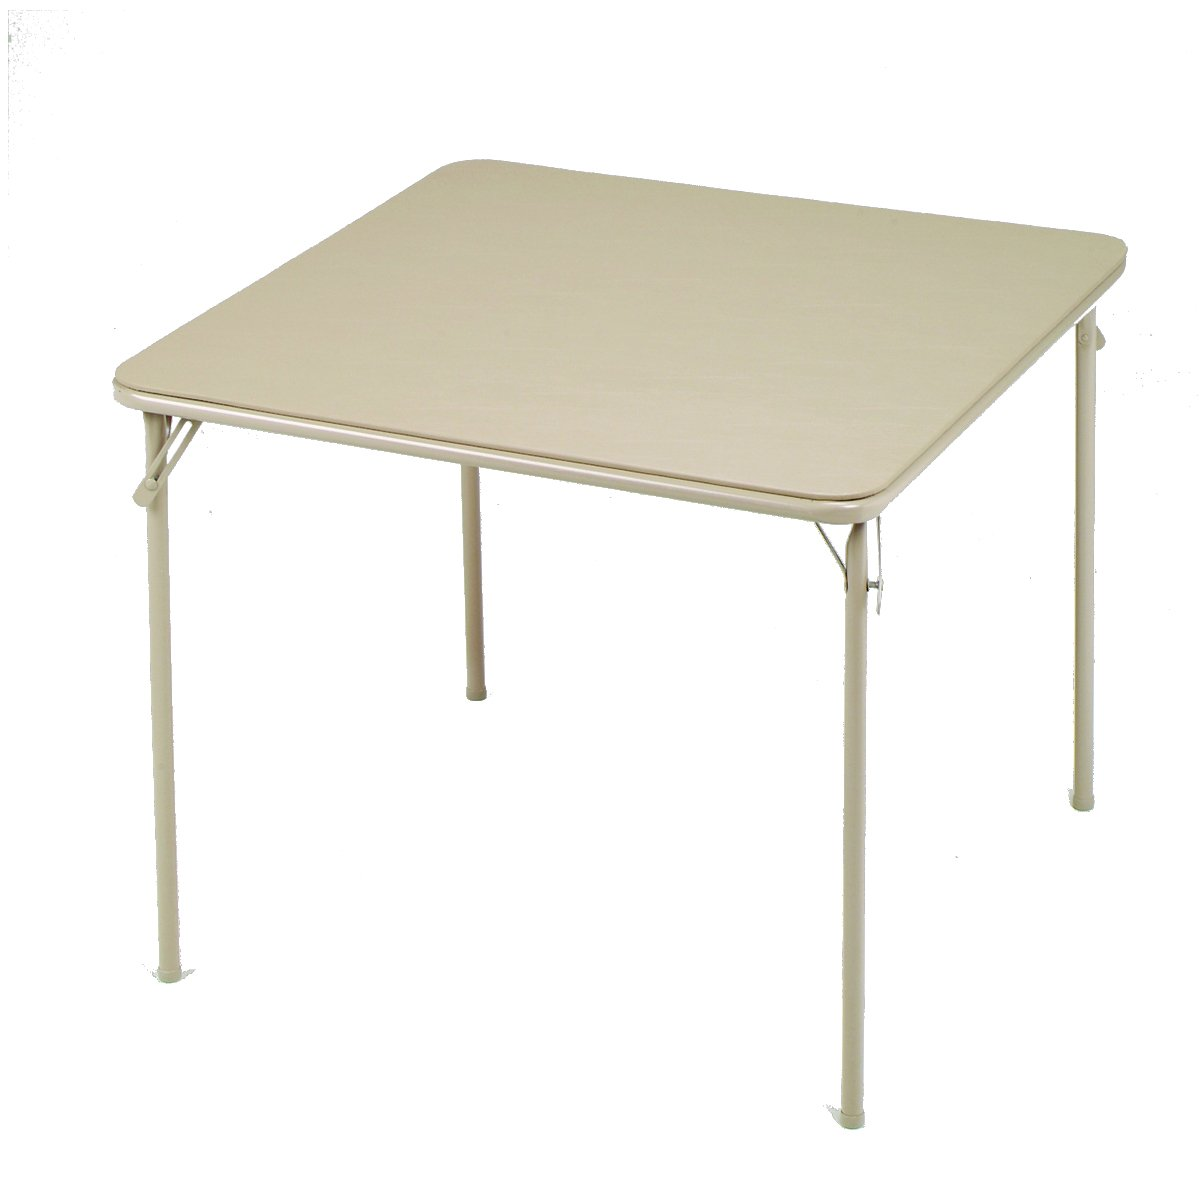 Delicieux Amazon.com: Meco Square Folding Table, 34 By 34 Inch, Buff: Kitchen U0026 Dining